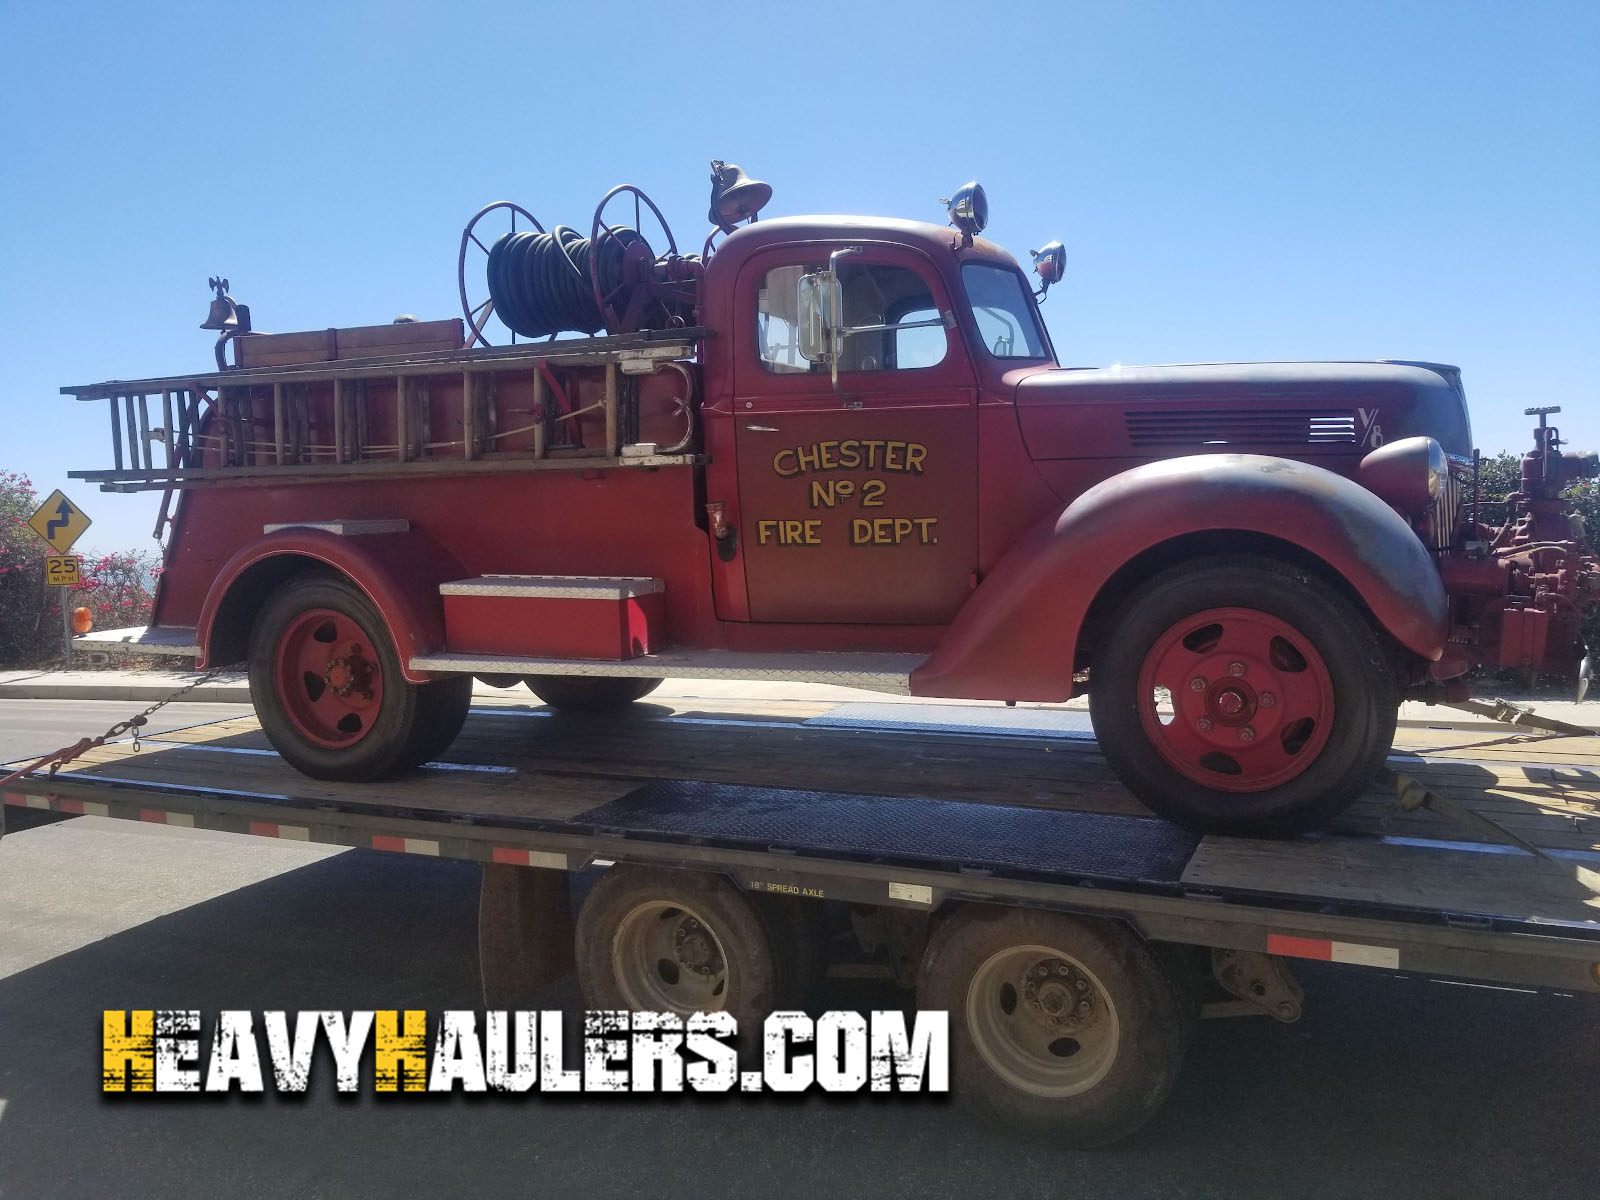 Antique 1940 Ford fire truck being transported